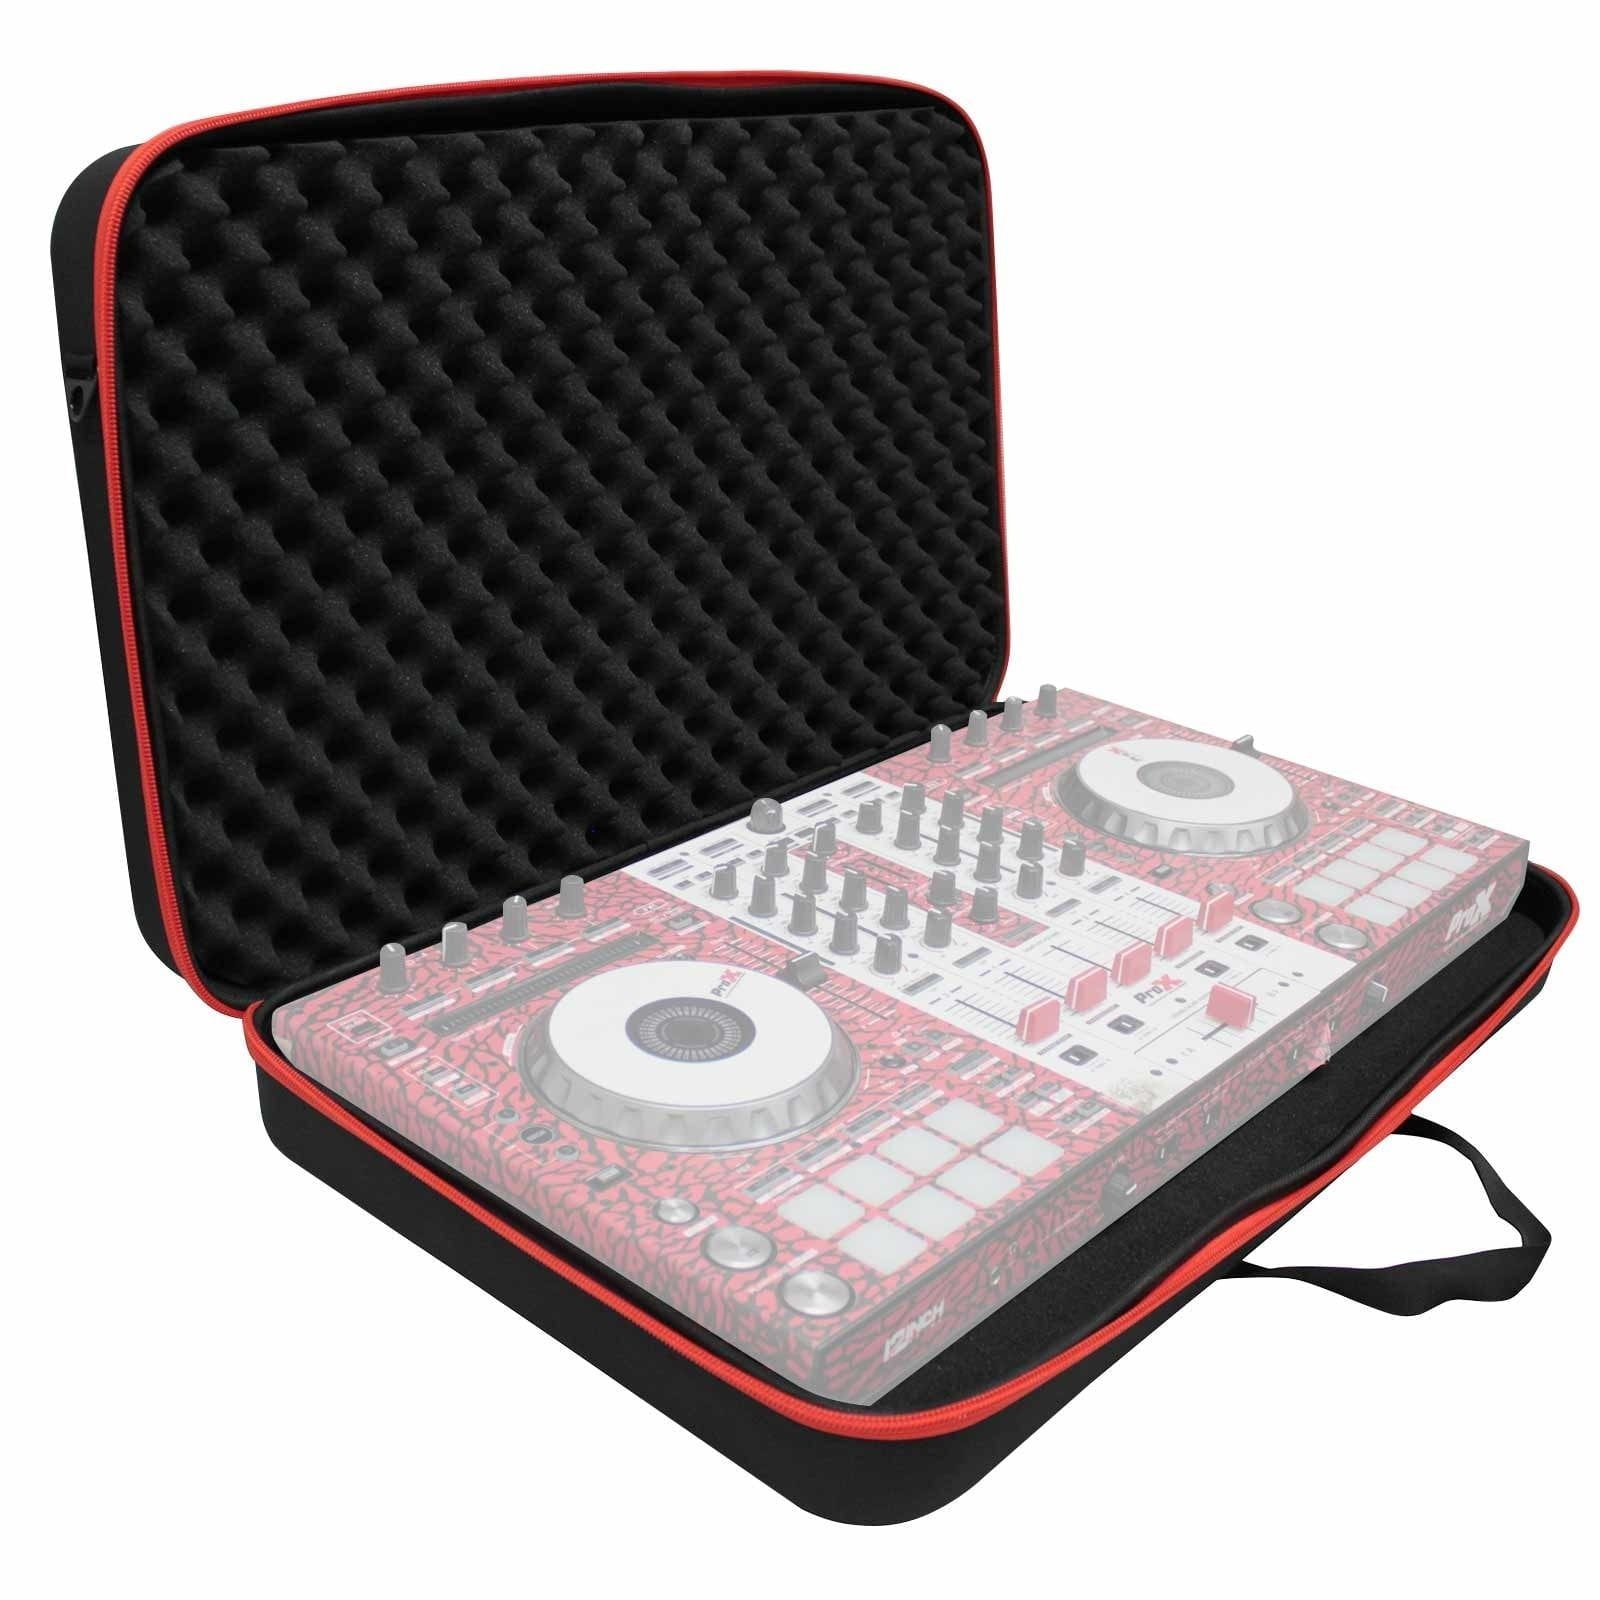 prox-xb-djcm-medium-dj-controller-zerog-ultra-lightweight-eva-molded-hard-shell-bag-3e9